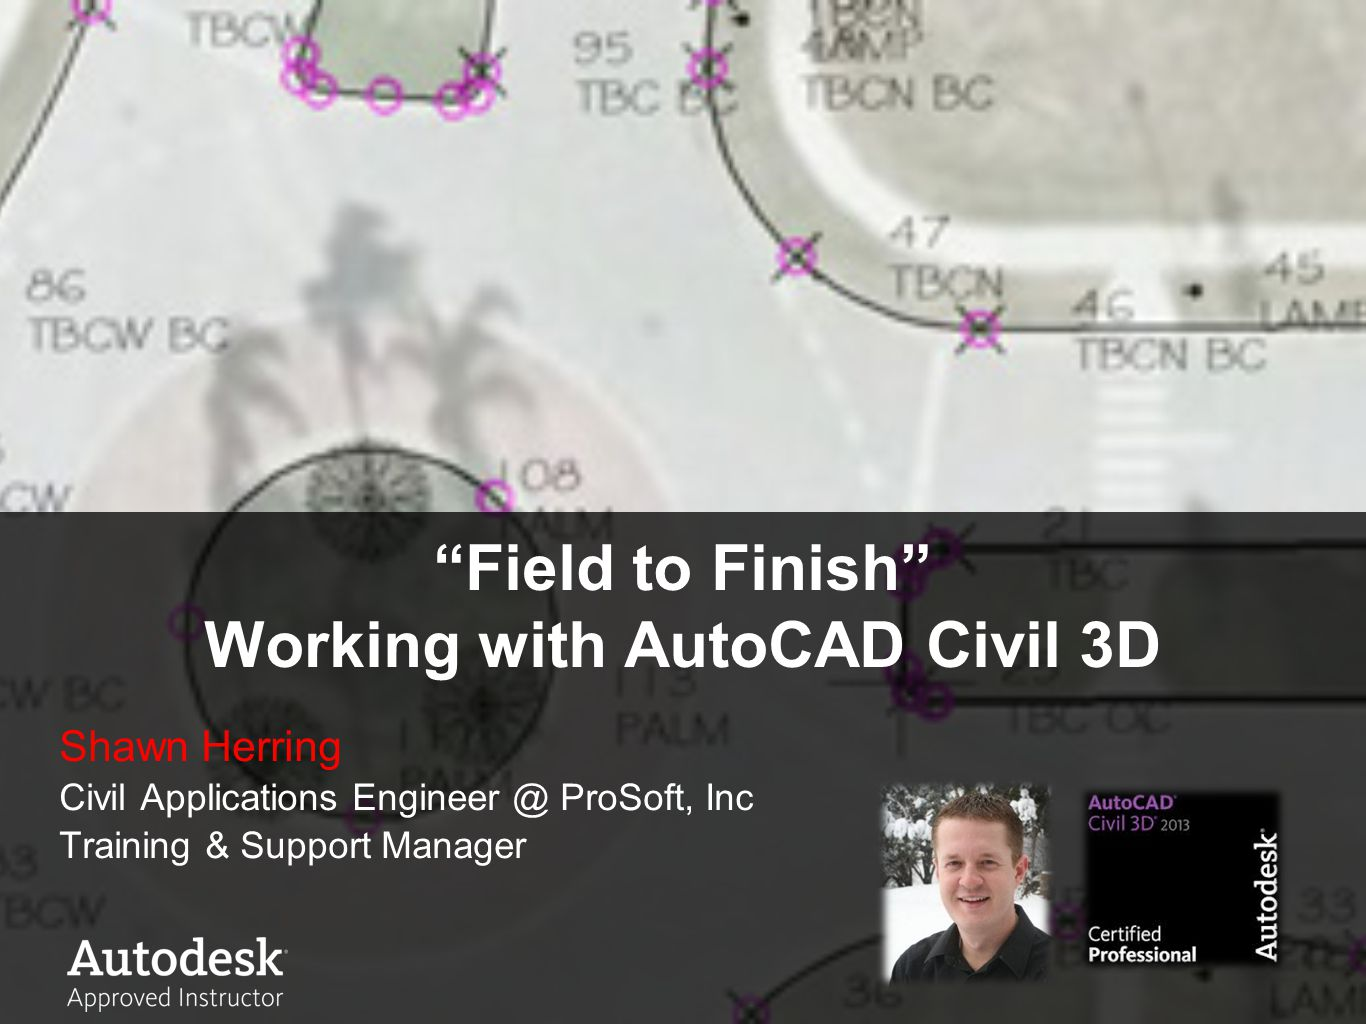 Field to Finish Working with AutoCAD Civil 3D